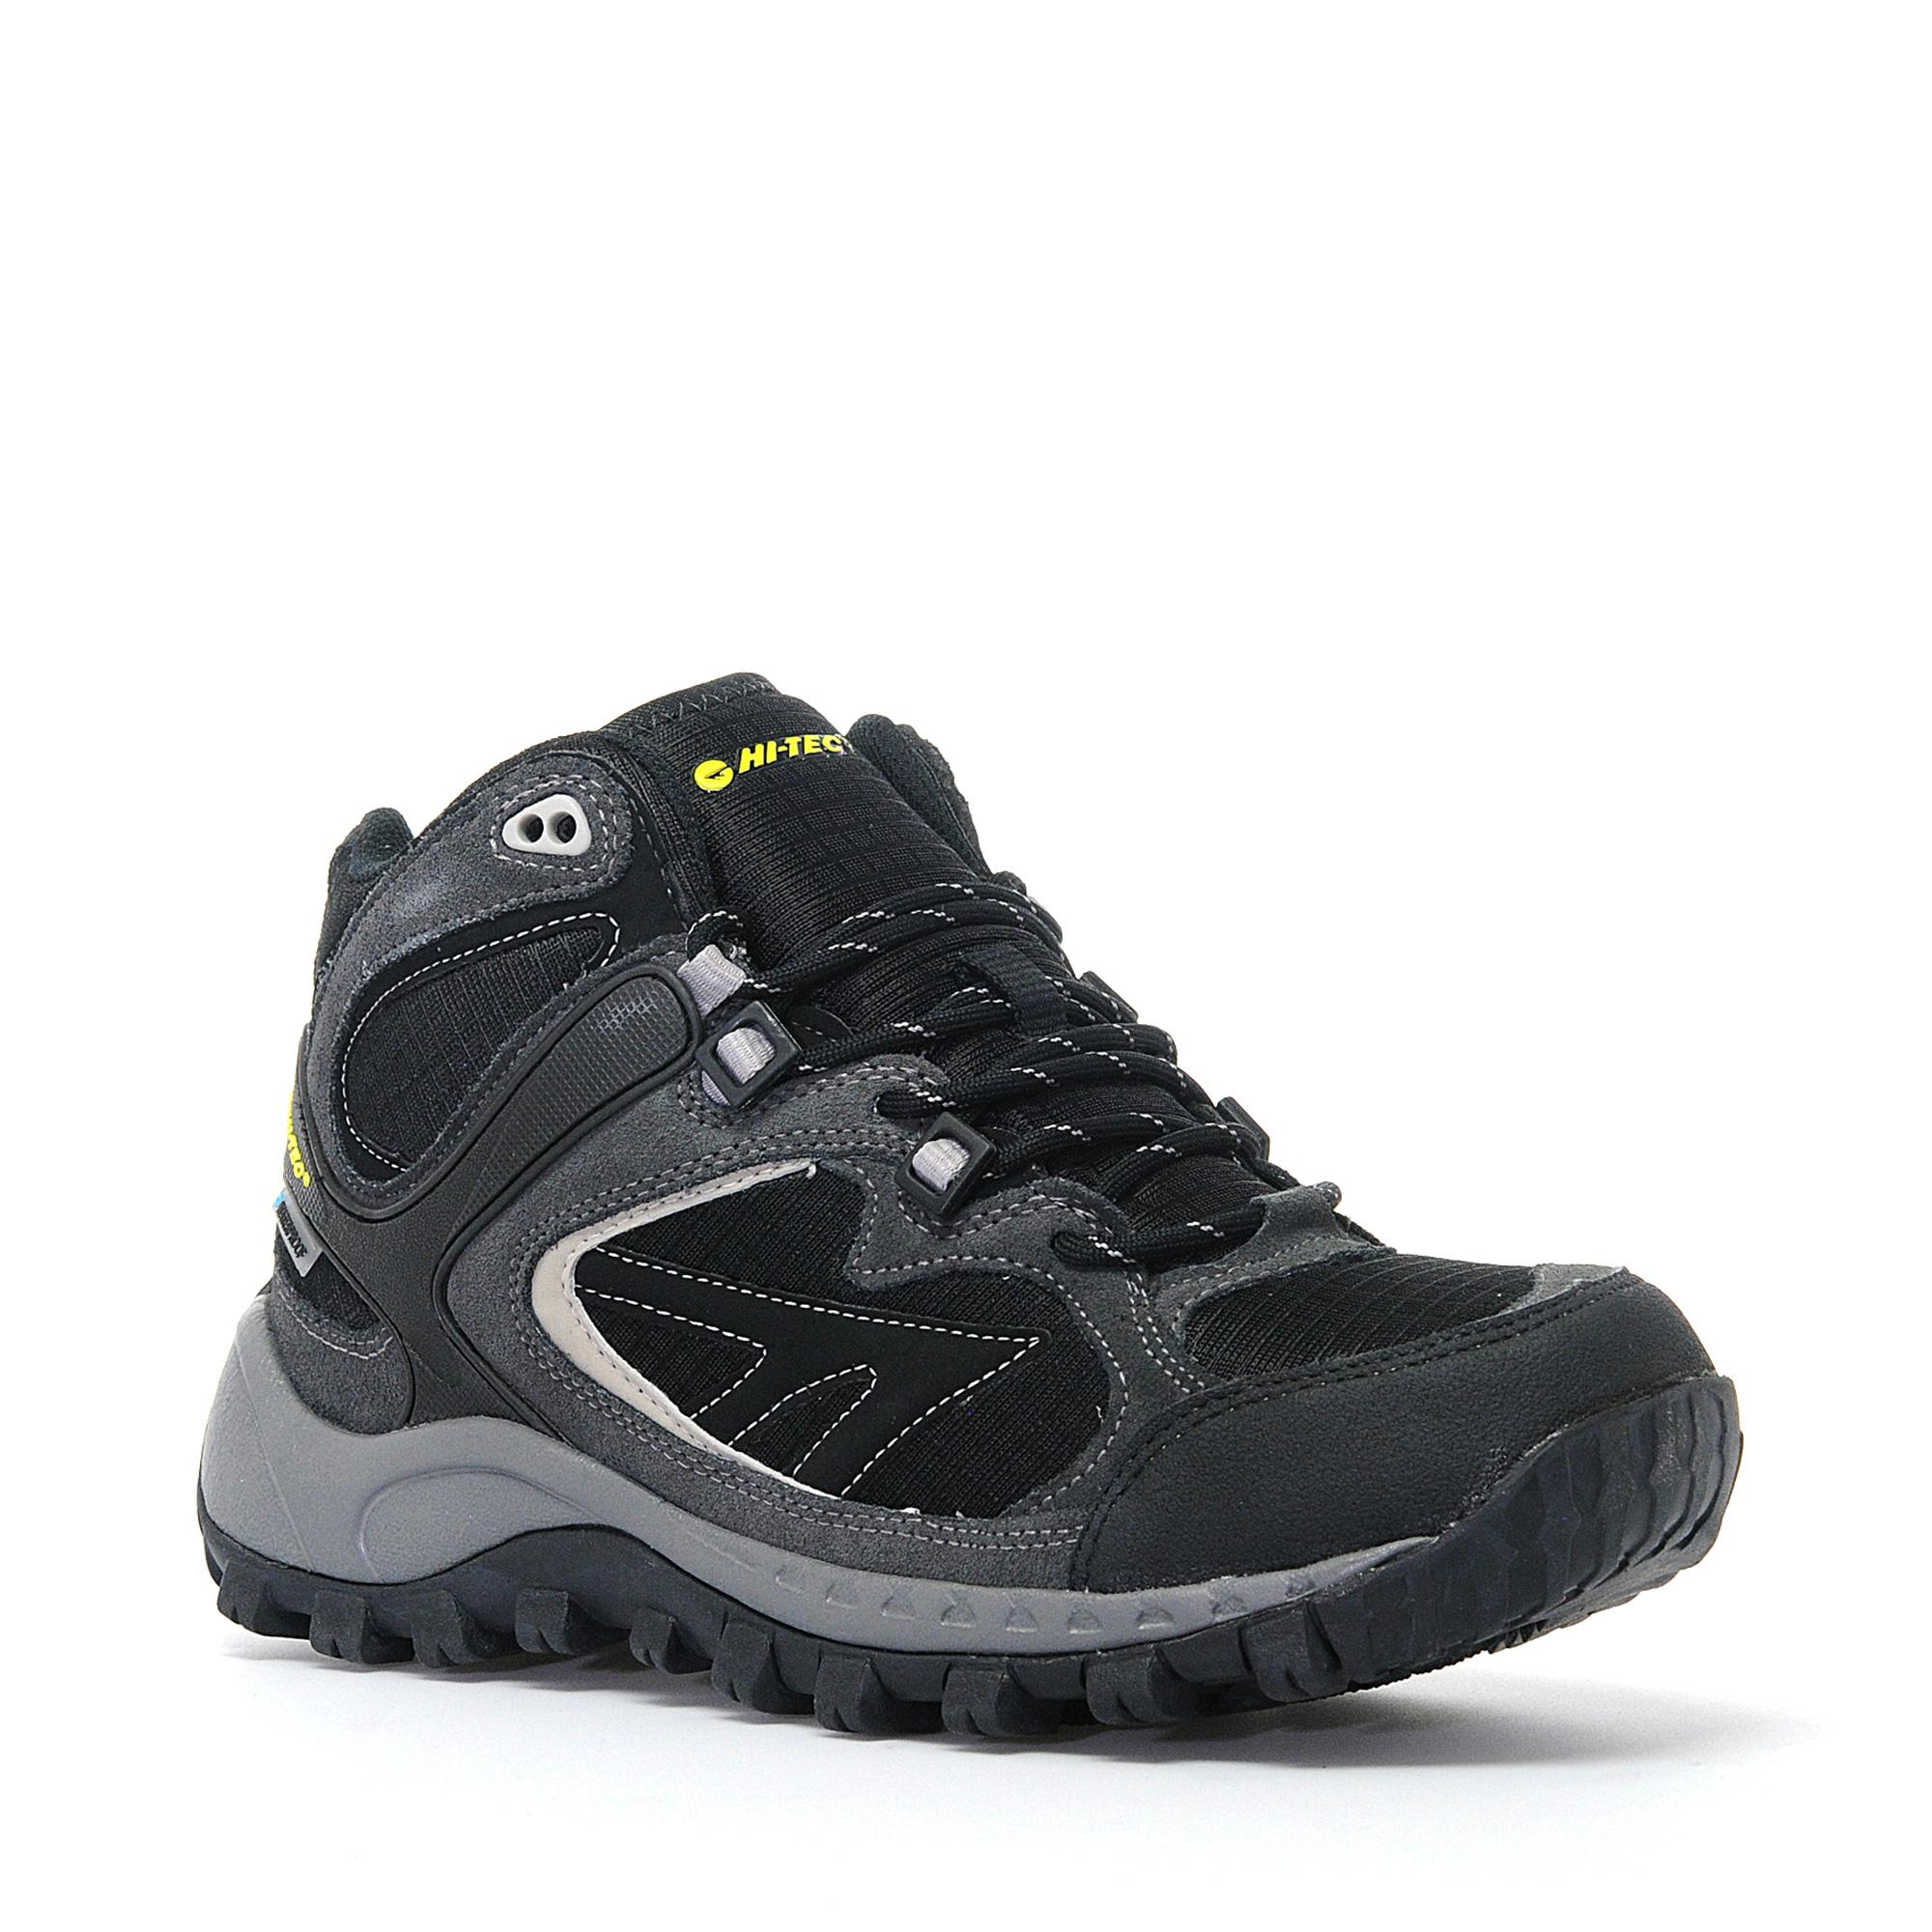 Hi Tec Mens South Trail Waterproof Mid Walking Shoe Black